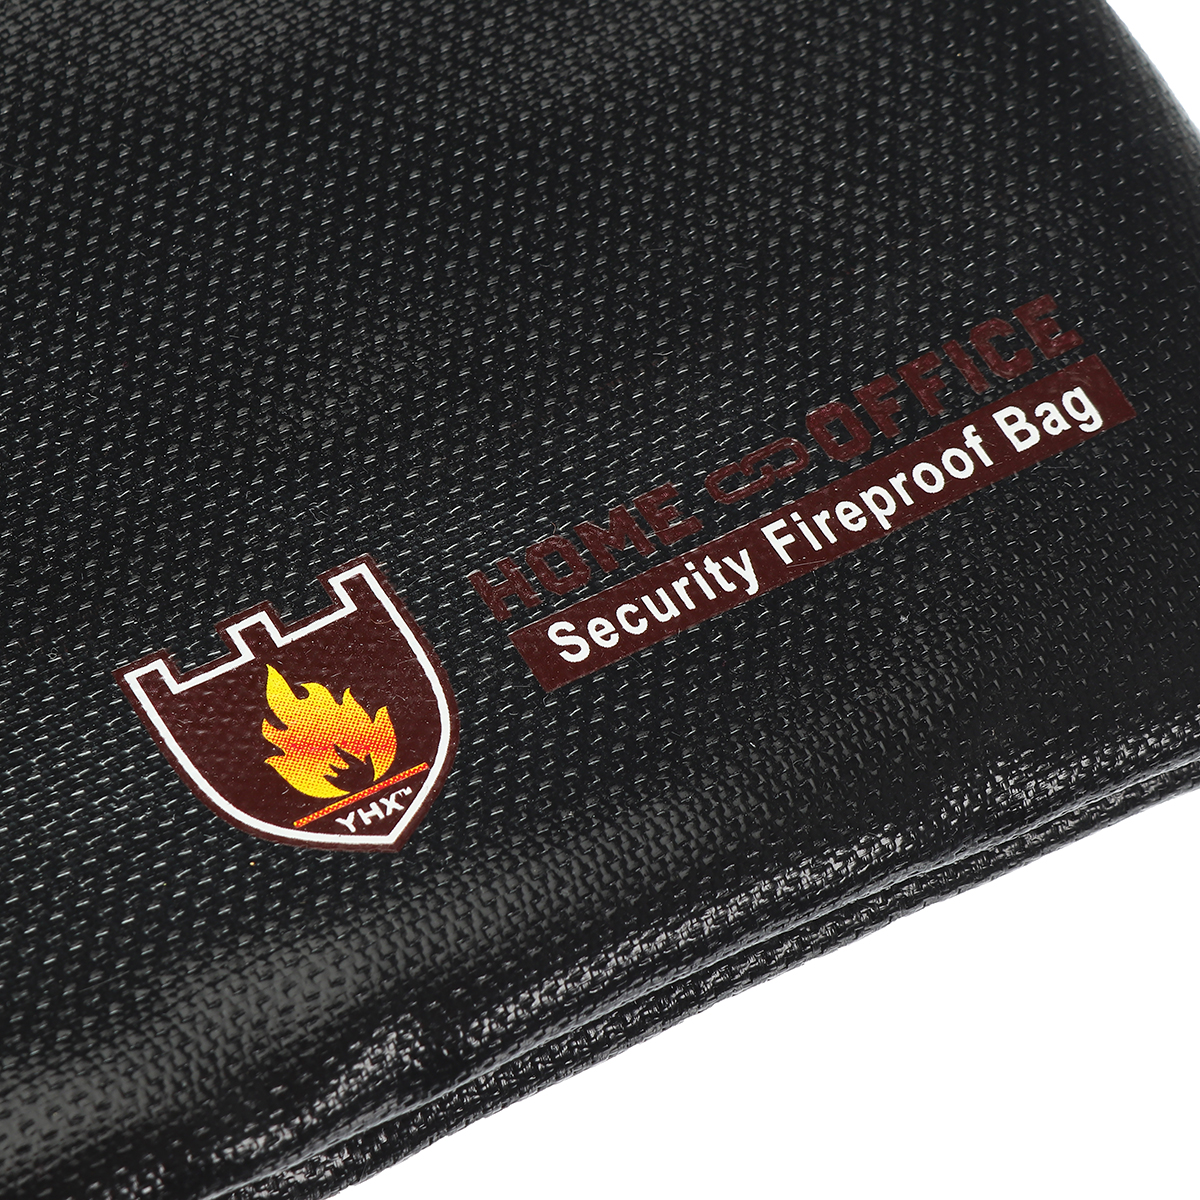 Fireproof Fire Resistant Document Bag Envelope Pouch For Passport Money File CA